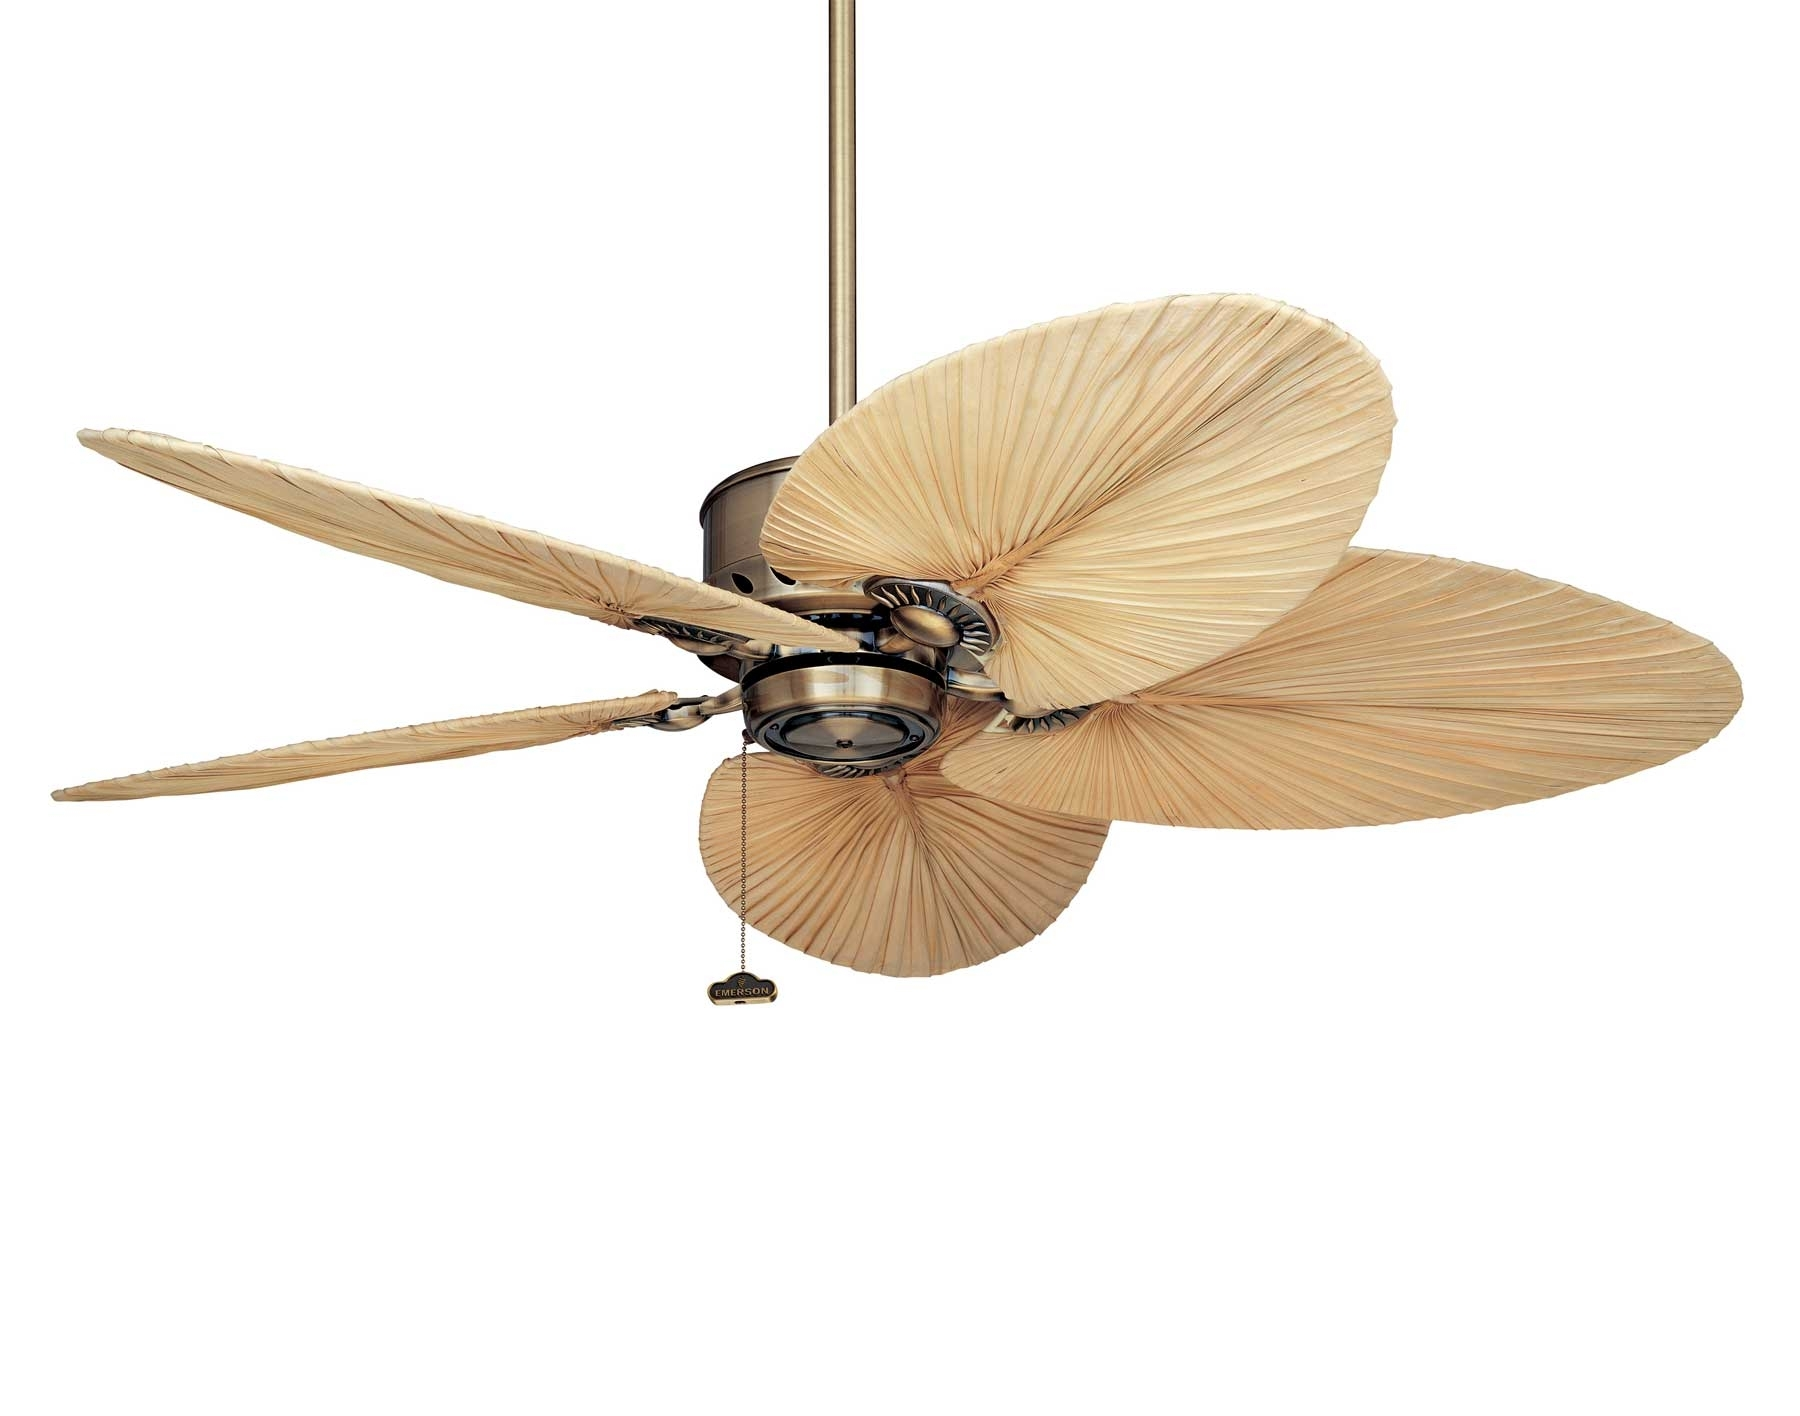 Image Result For Wooden Ceiling Fans With Lights Leaf Australia Regarding Outdoor Ceiling Fans With Tropical Lights (#12 of 15)